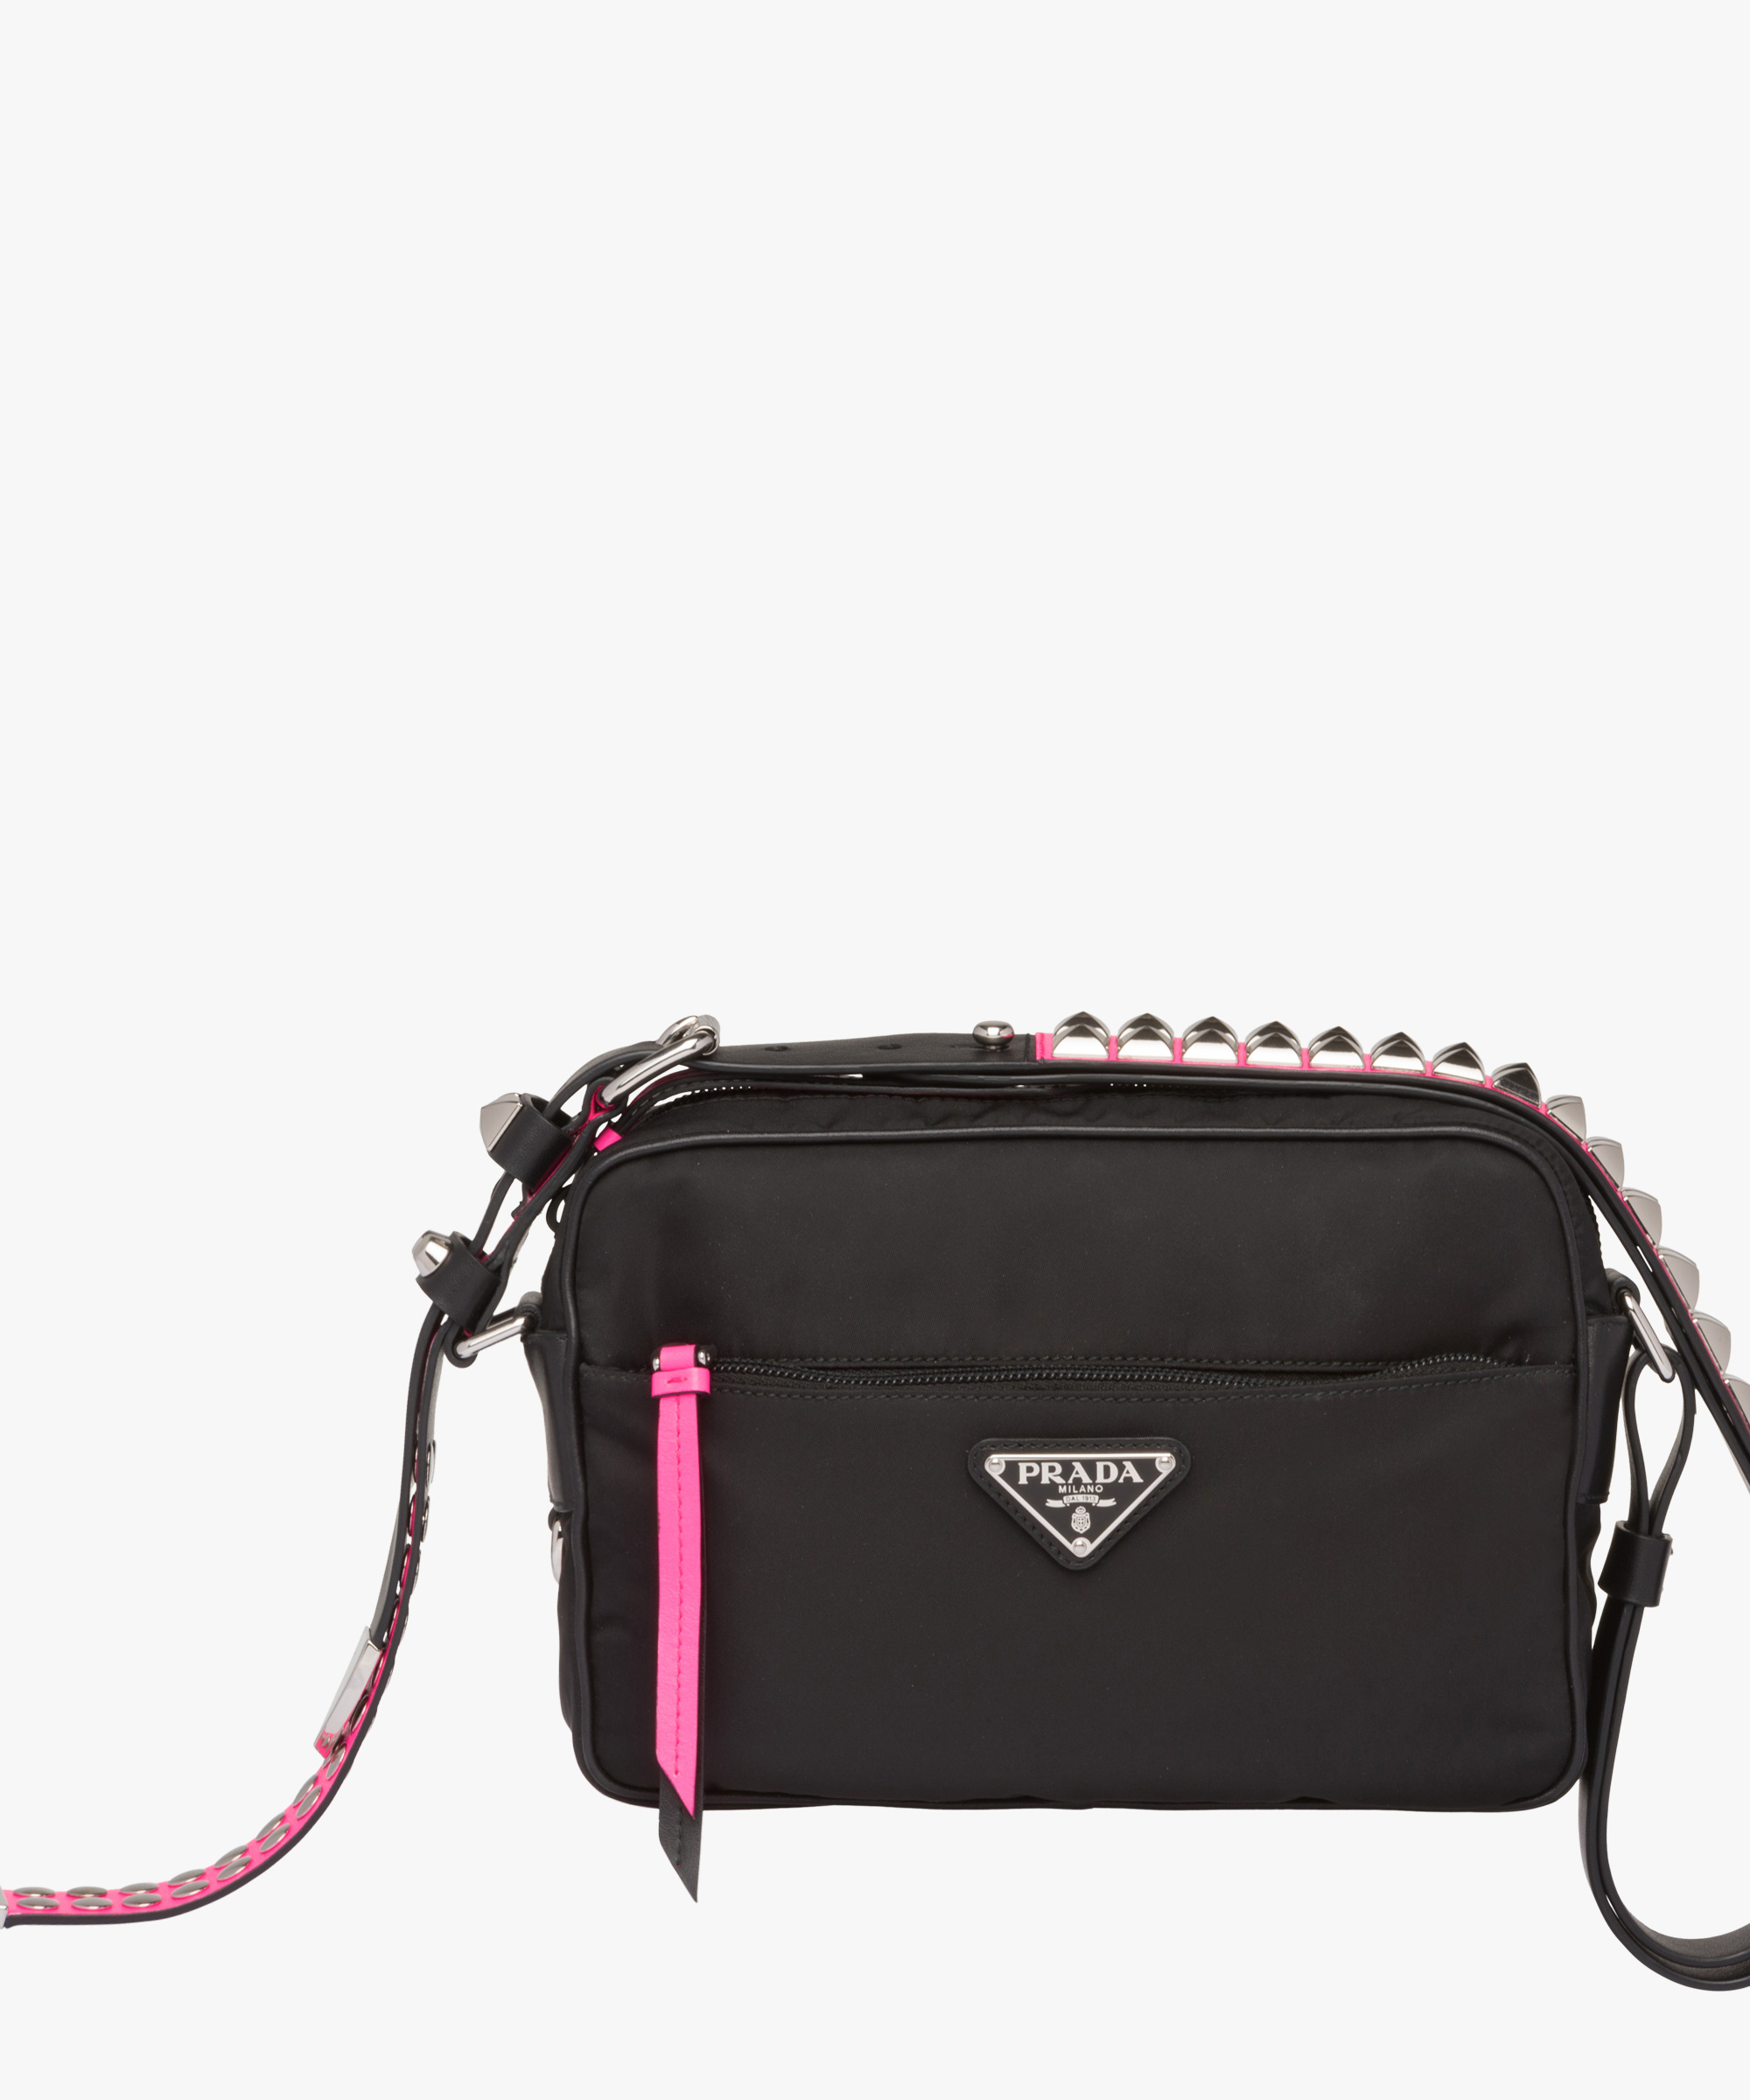 07746a398047ef ... promo code for prada black nylon shoulder bag prada blackfluorescent  pink 66ad2 72e82